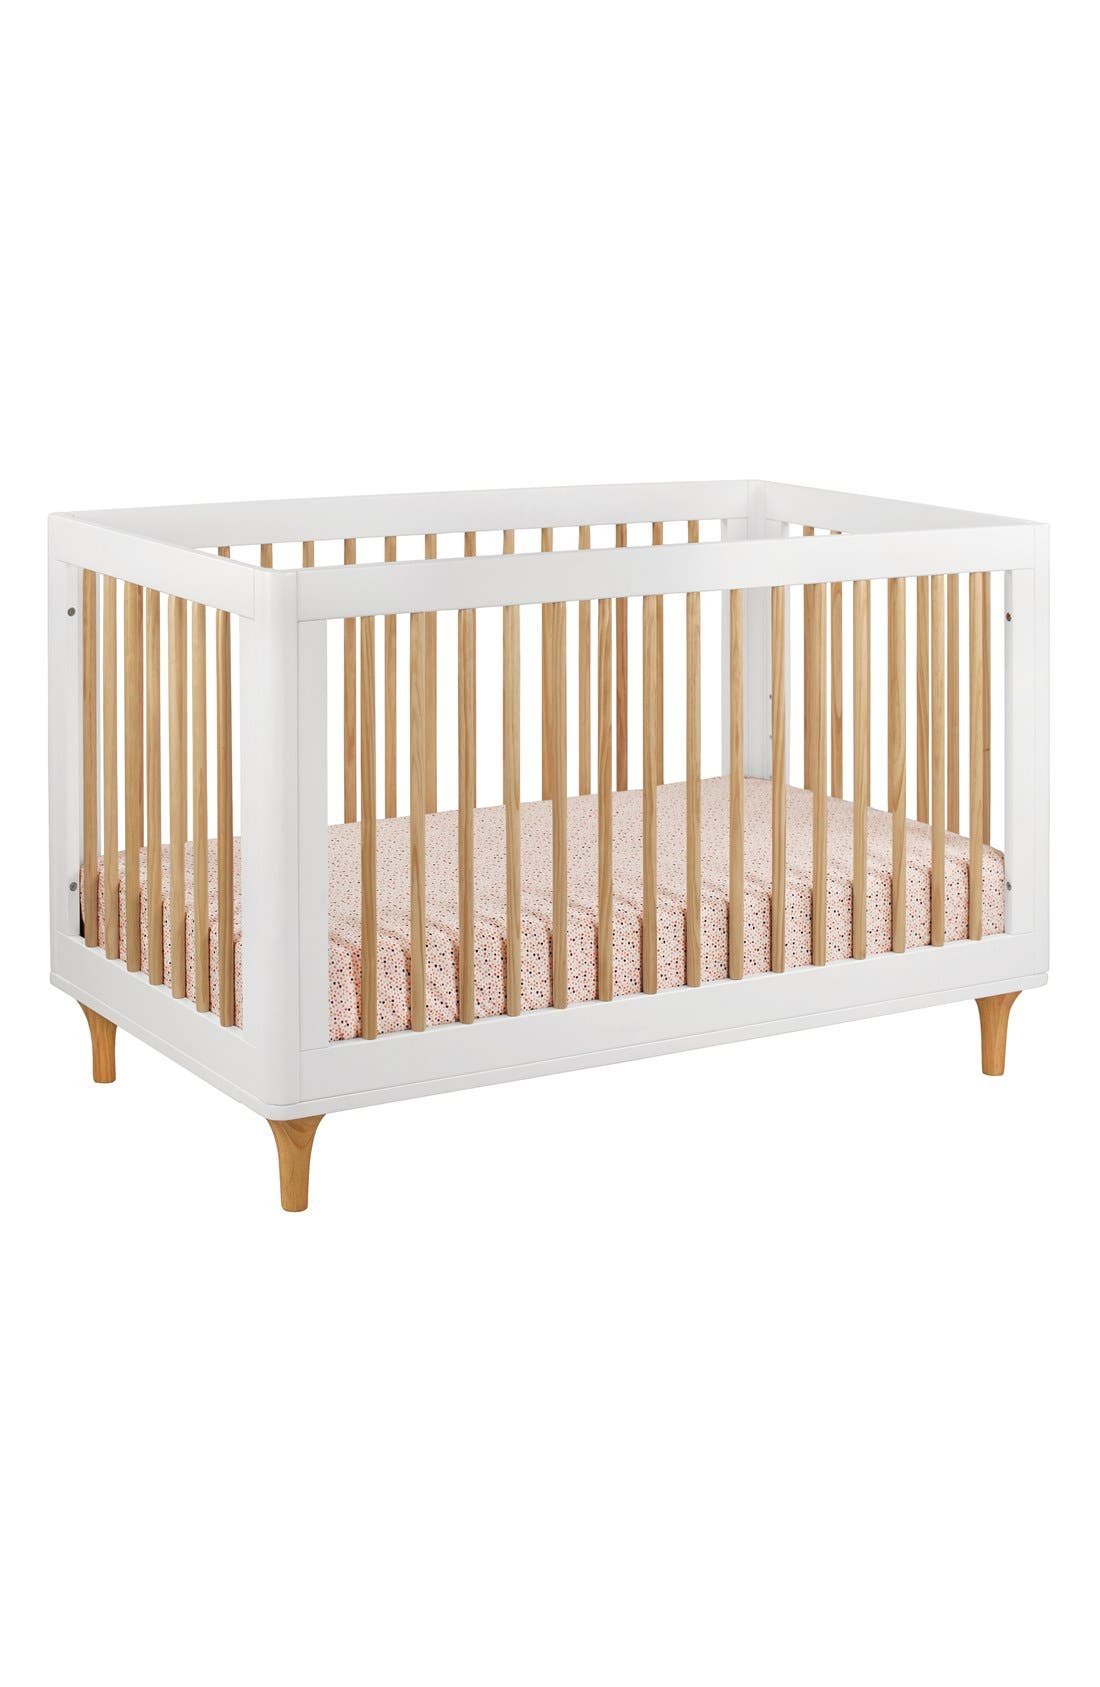 Main Image - babyletto 'Lolly' 3-in-1 Convertible Crib